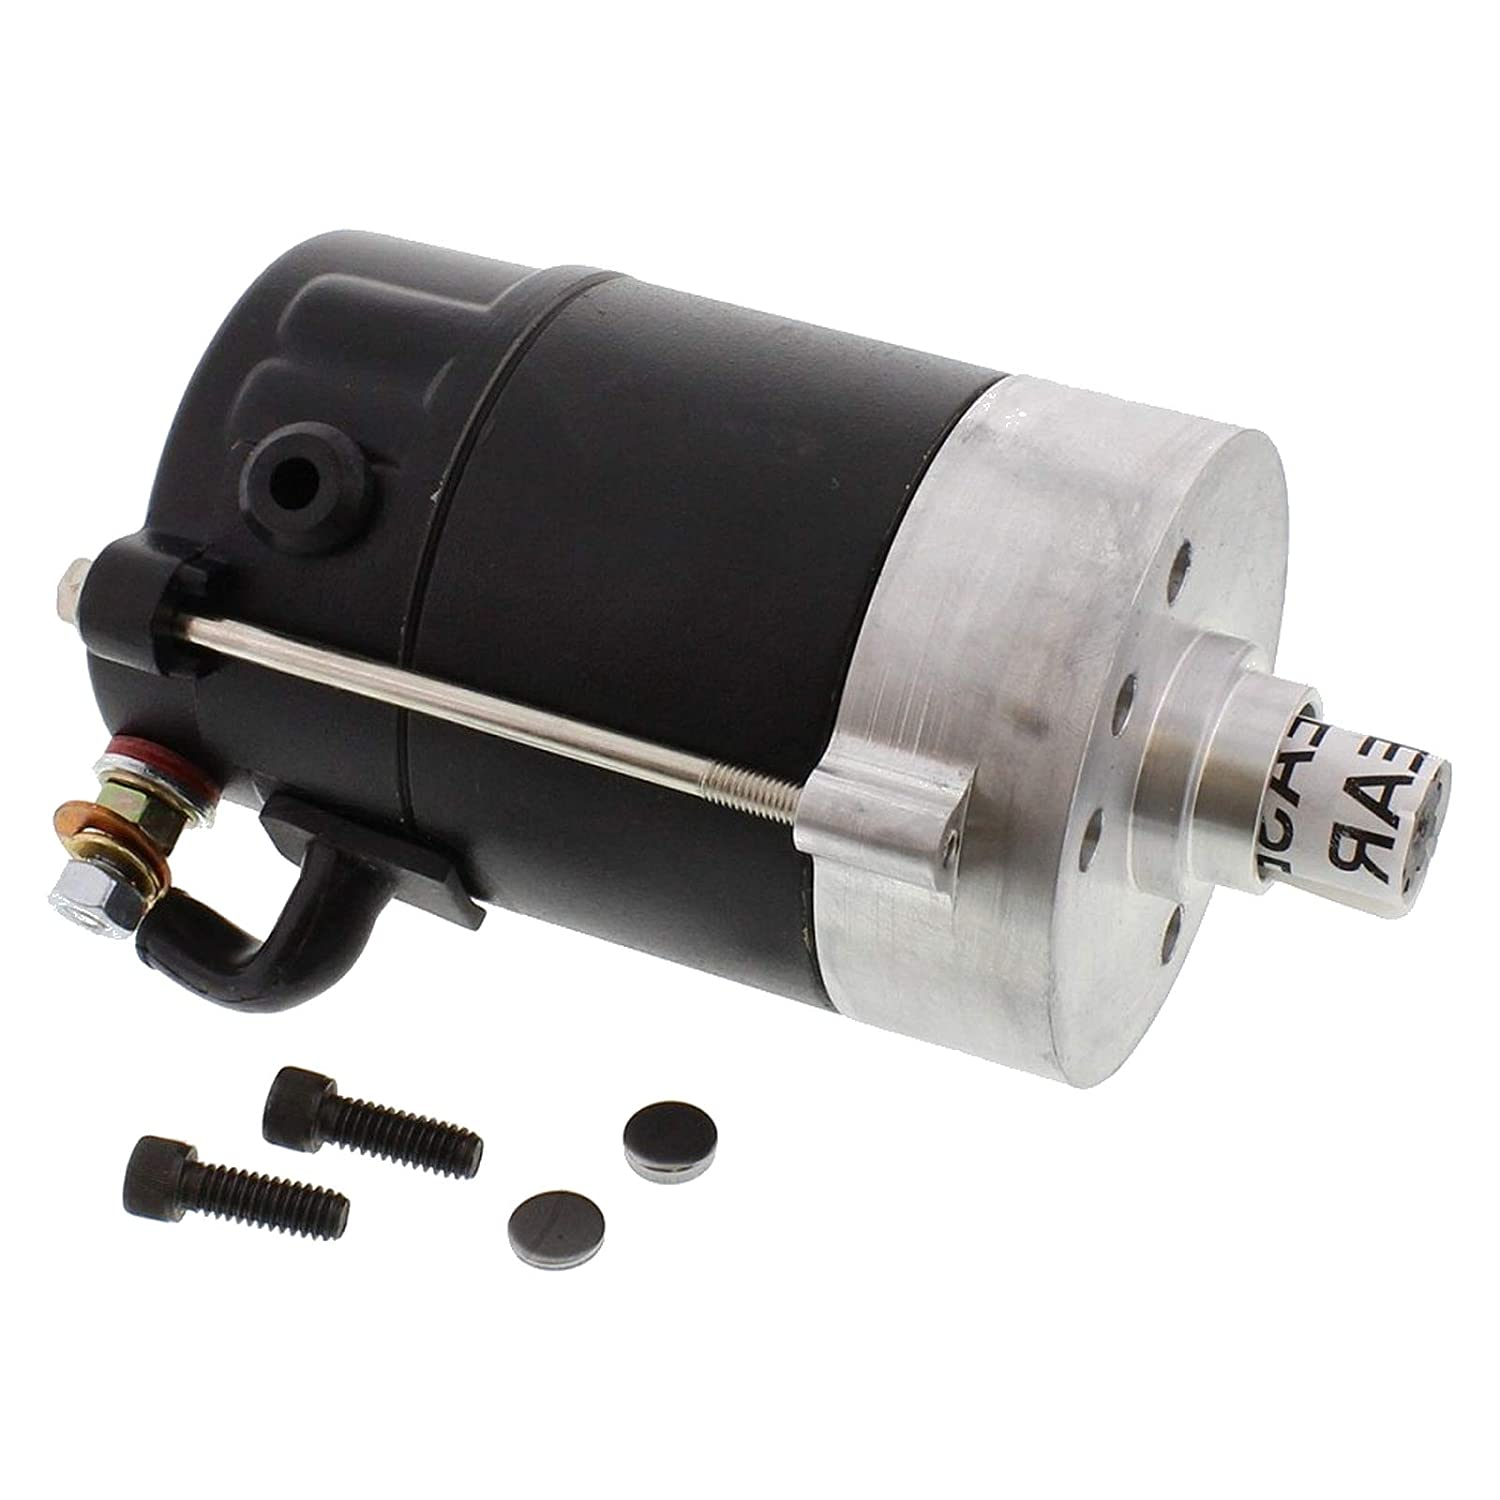 HD XLH 1000 Sportster 1972 All Balls Black Starter Motor